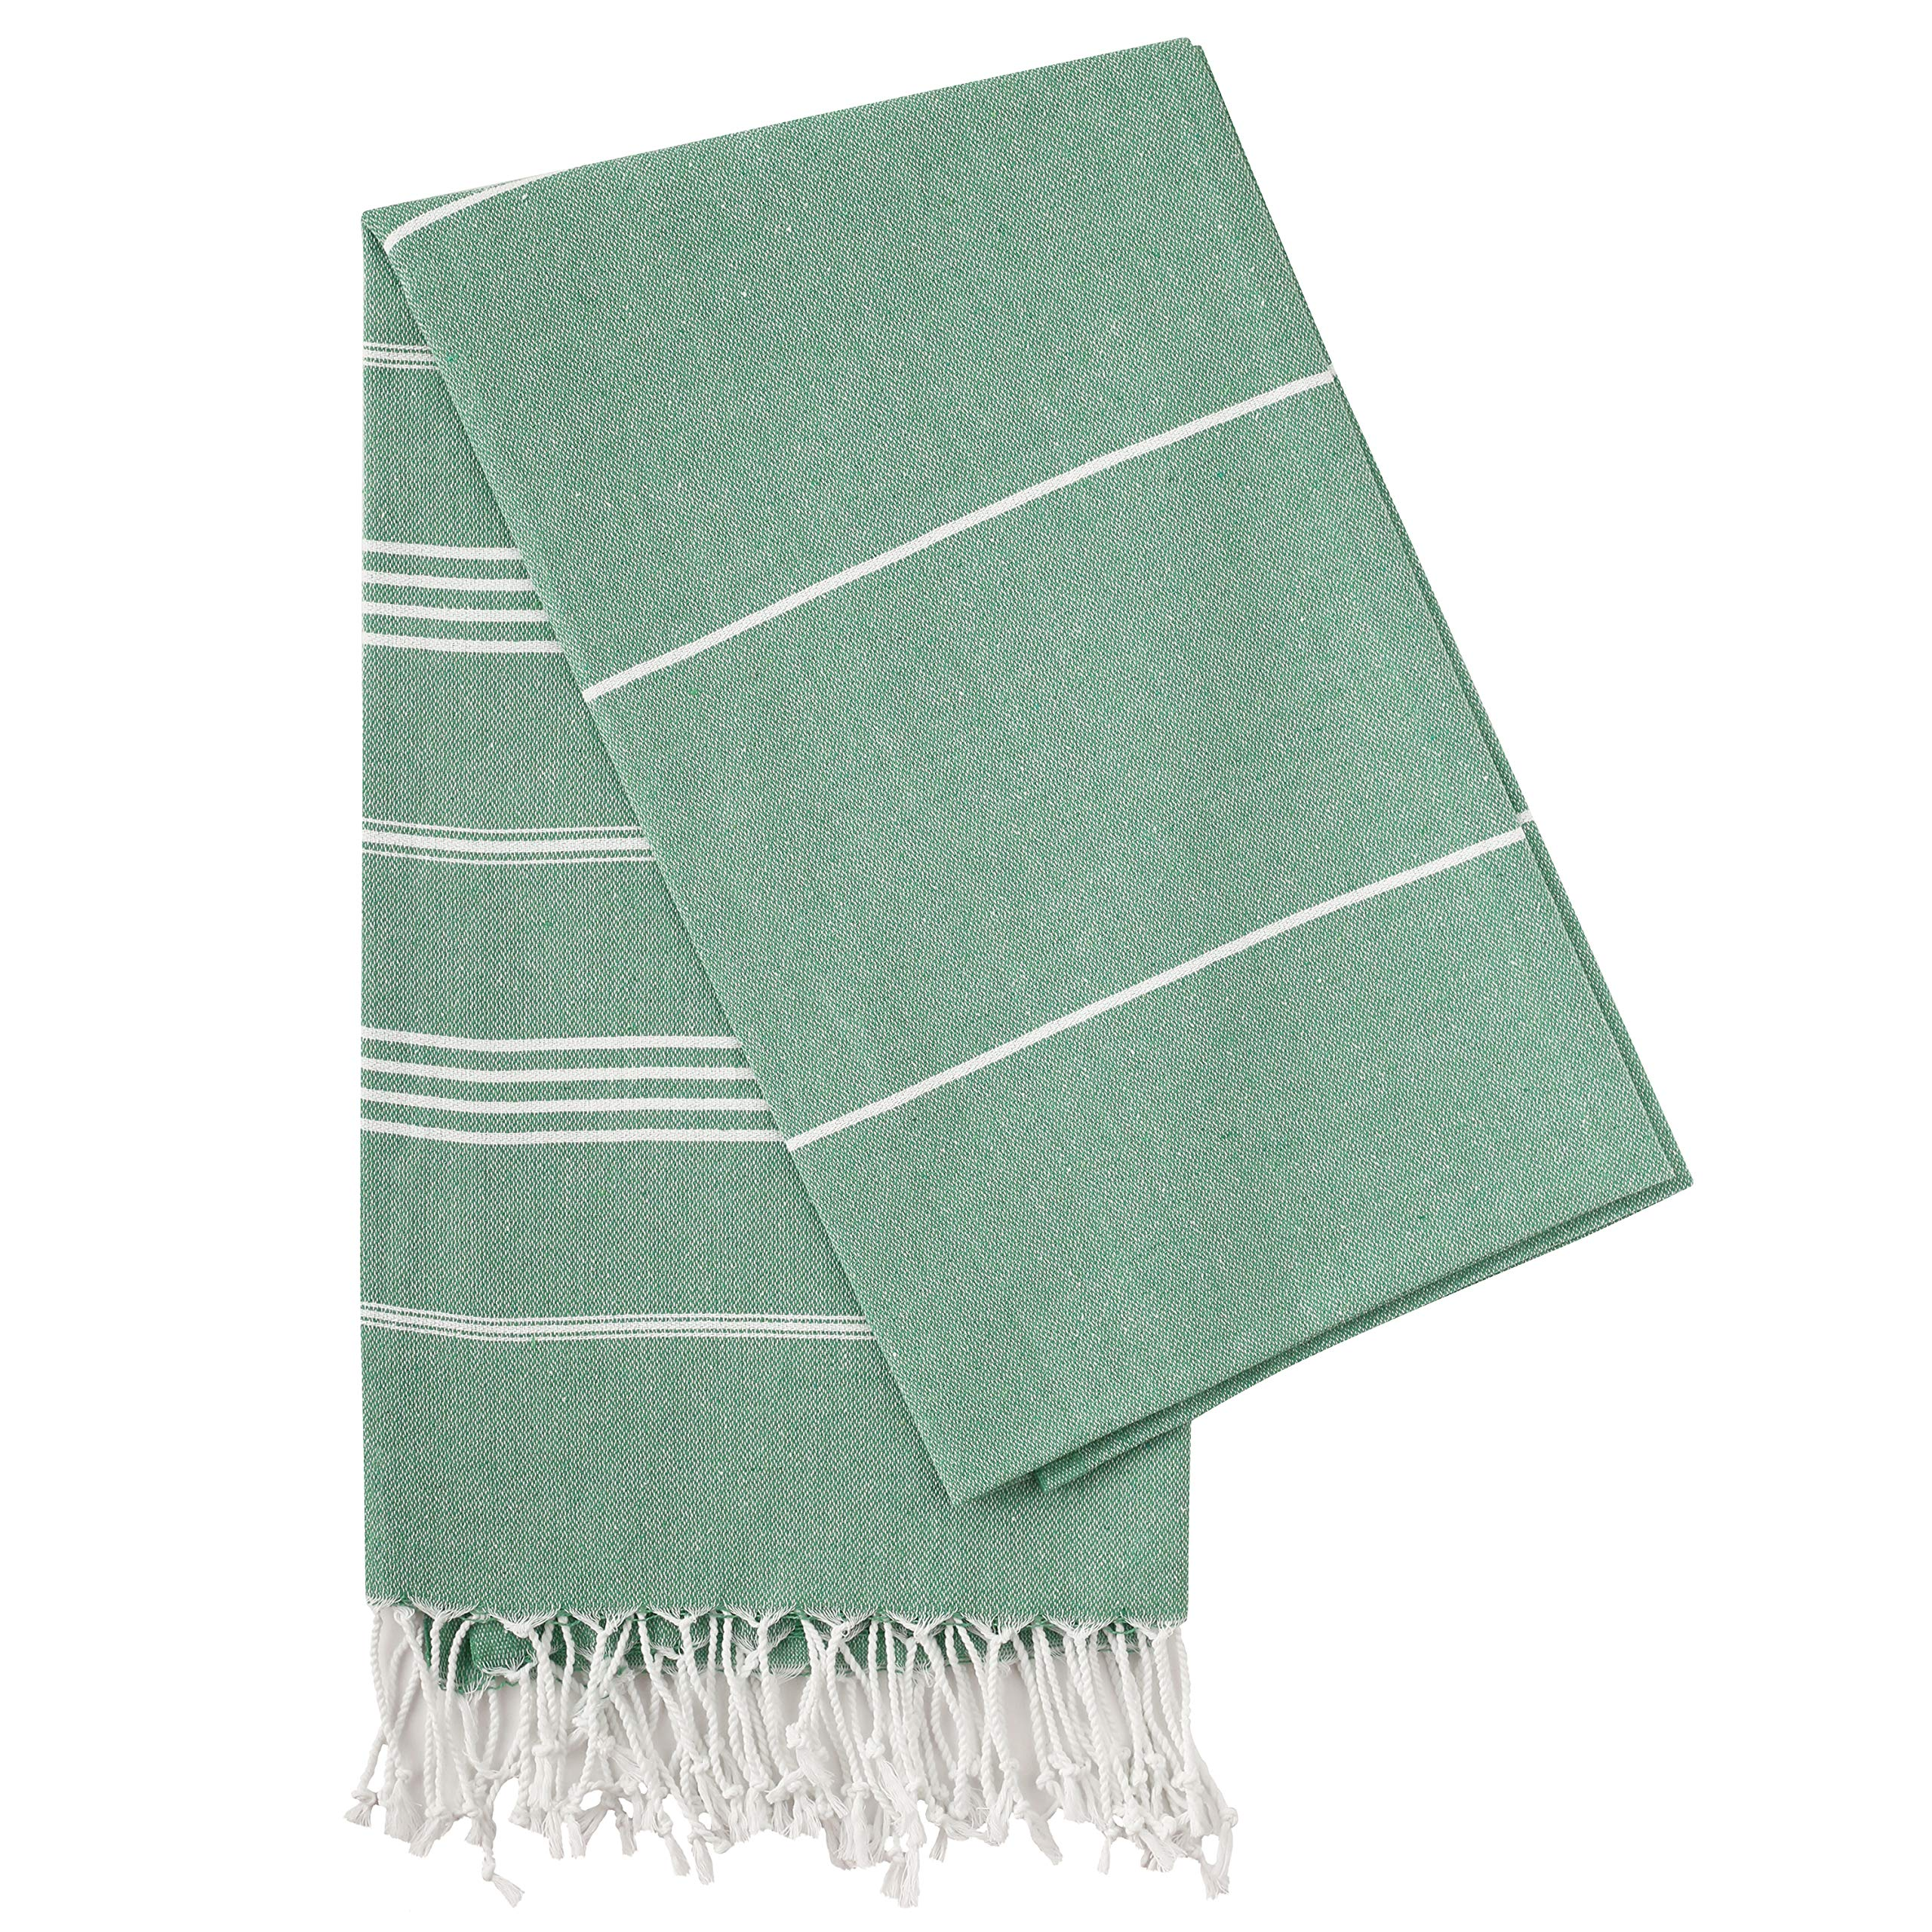 "Cacala Pure Series 37""x70"" Multi-Purpose Turkish Towel Made from Upcycled Cotton, Green"